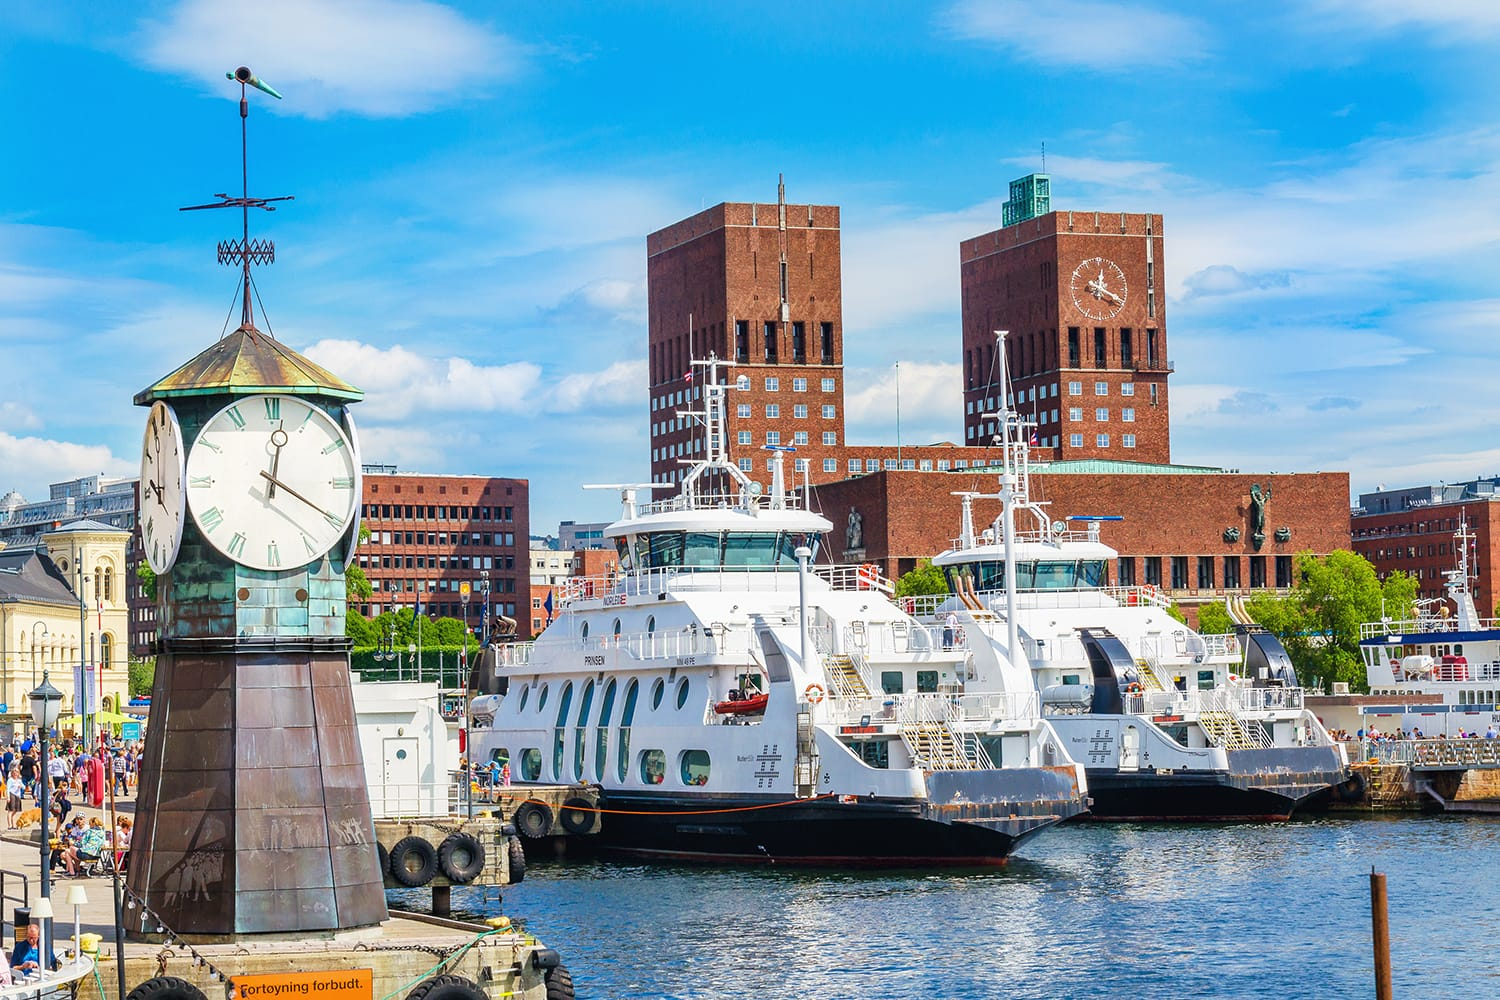 Clock on Aker Brygge Dock, modern and very popular part of Oslo in the background of the famous Oslo City Hall and the harbor, Oslo Fjord, Norway, Scandinavia